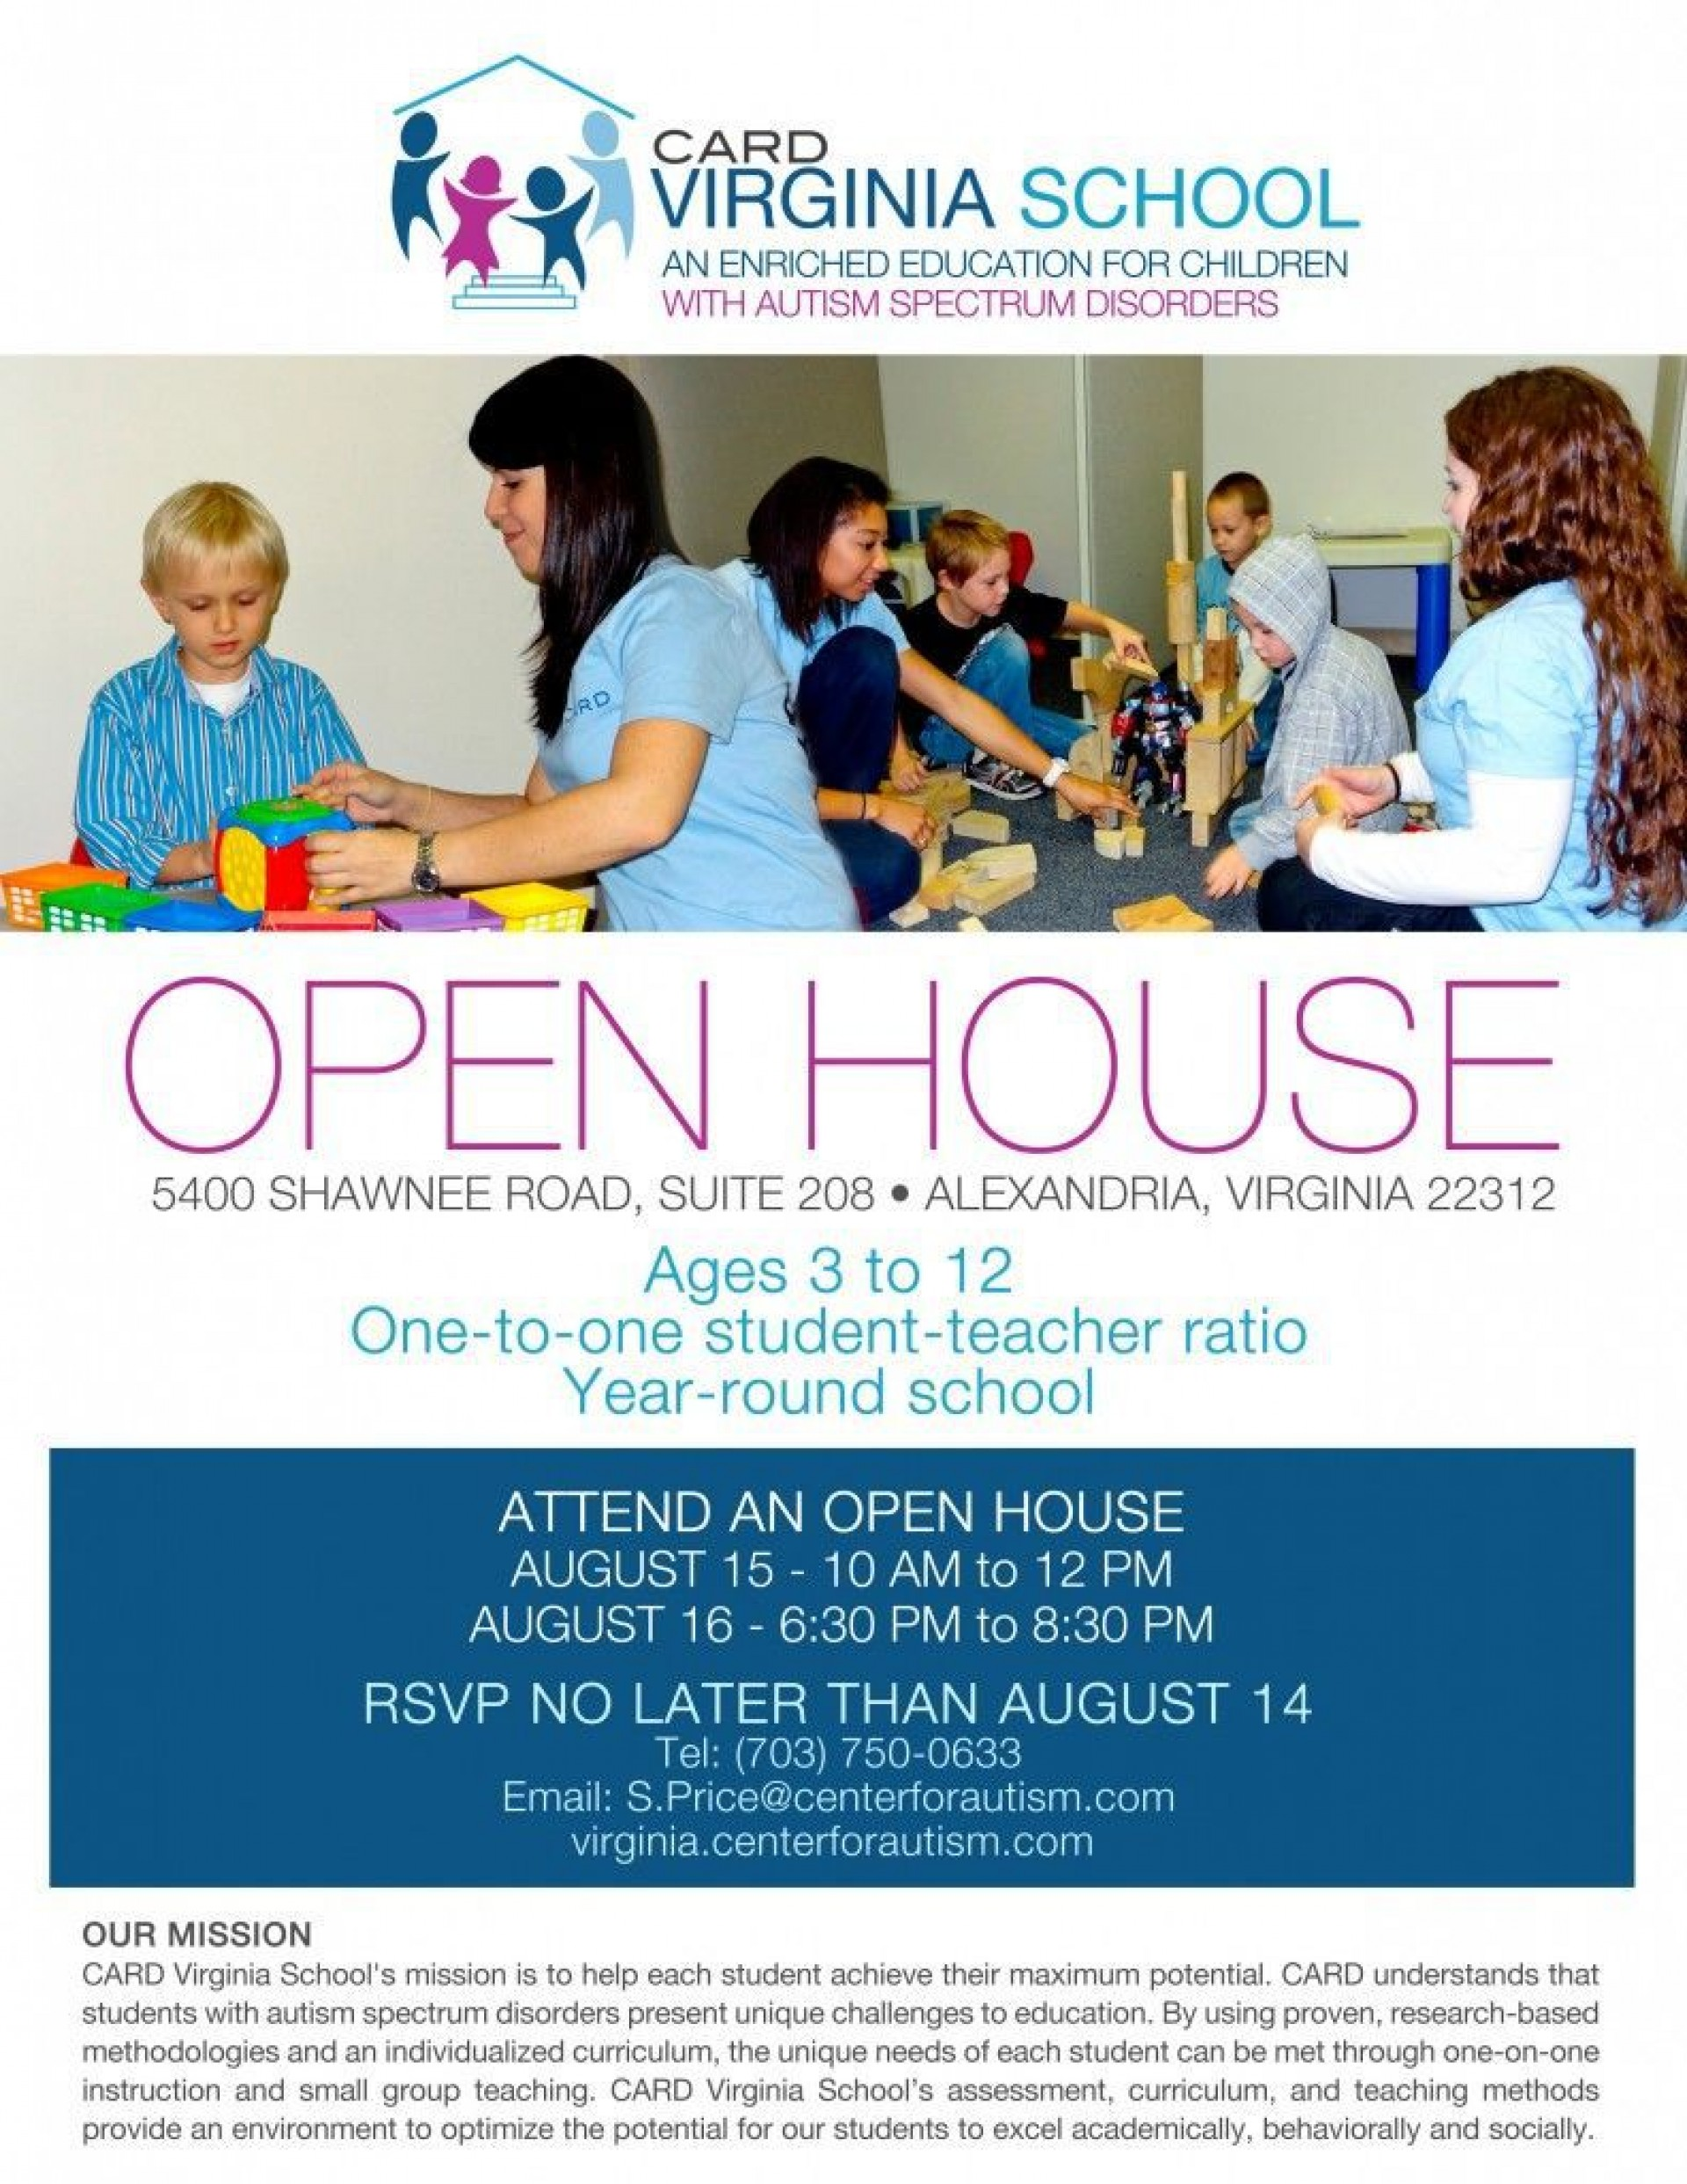 003 Surprising School Open House Flyer Template Image  Free Microsoft1920